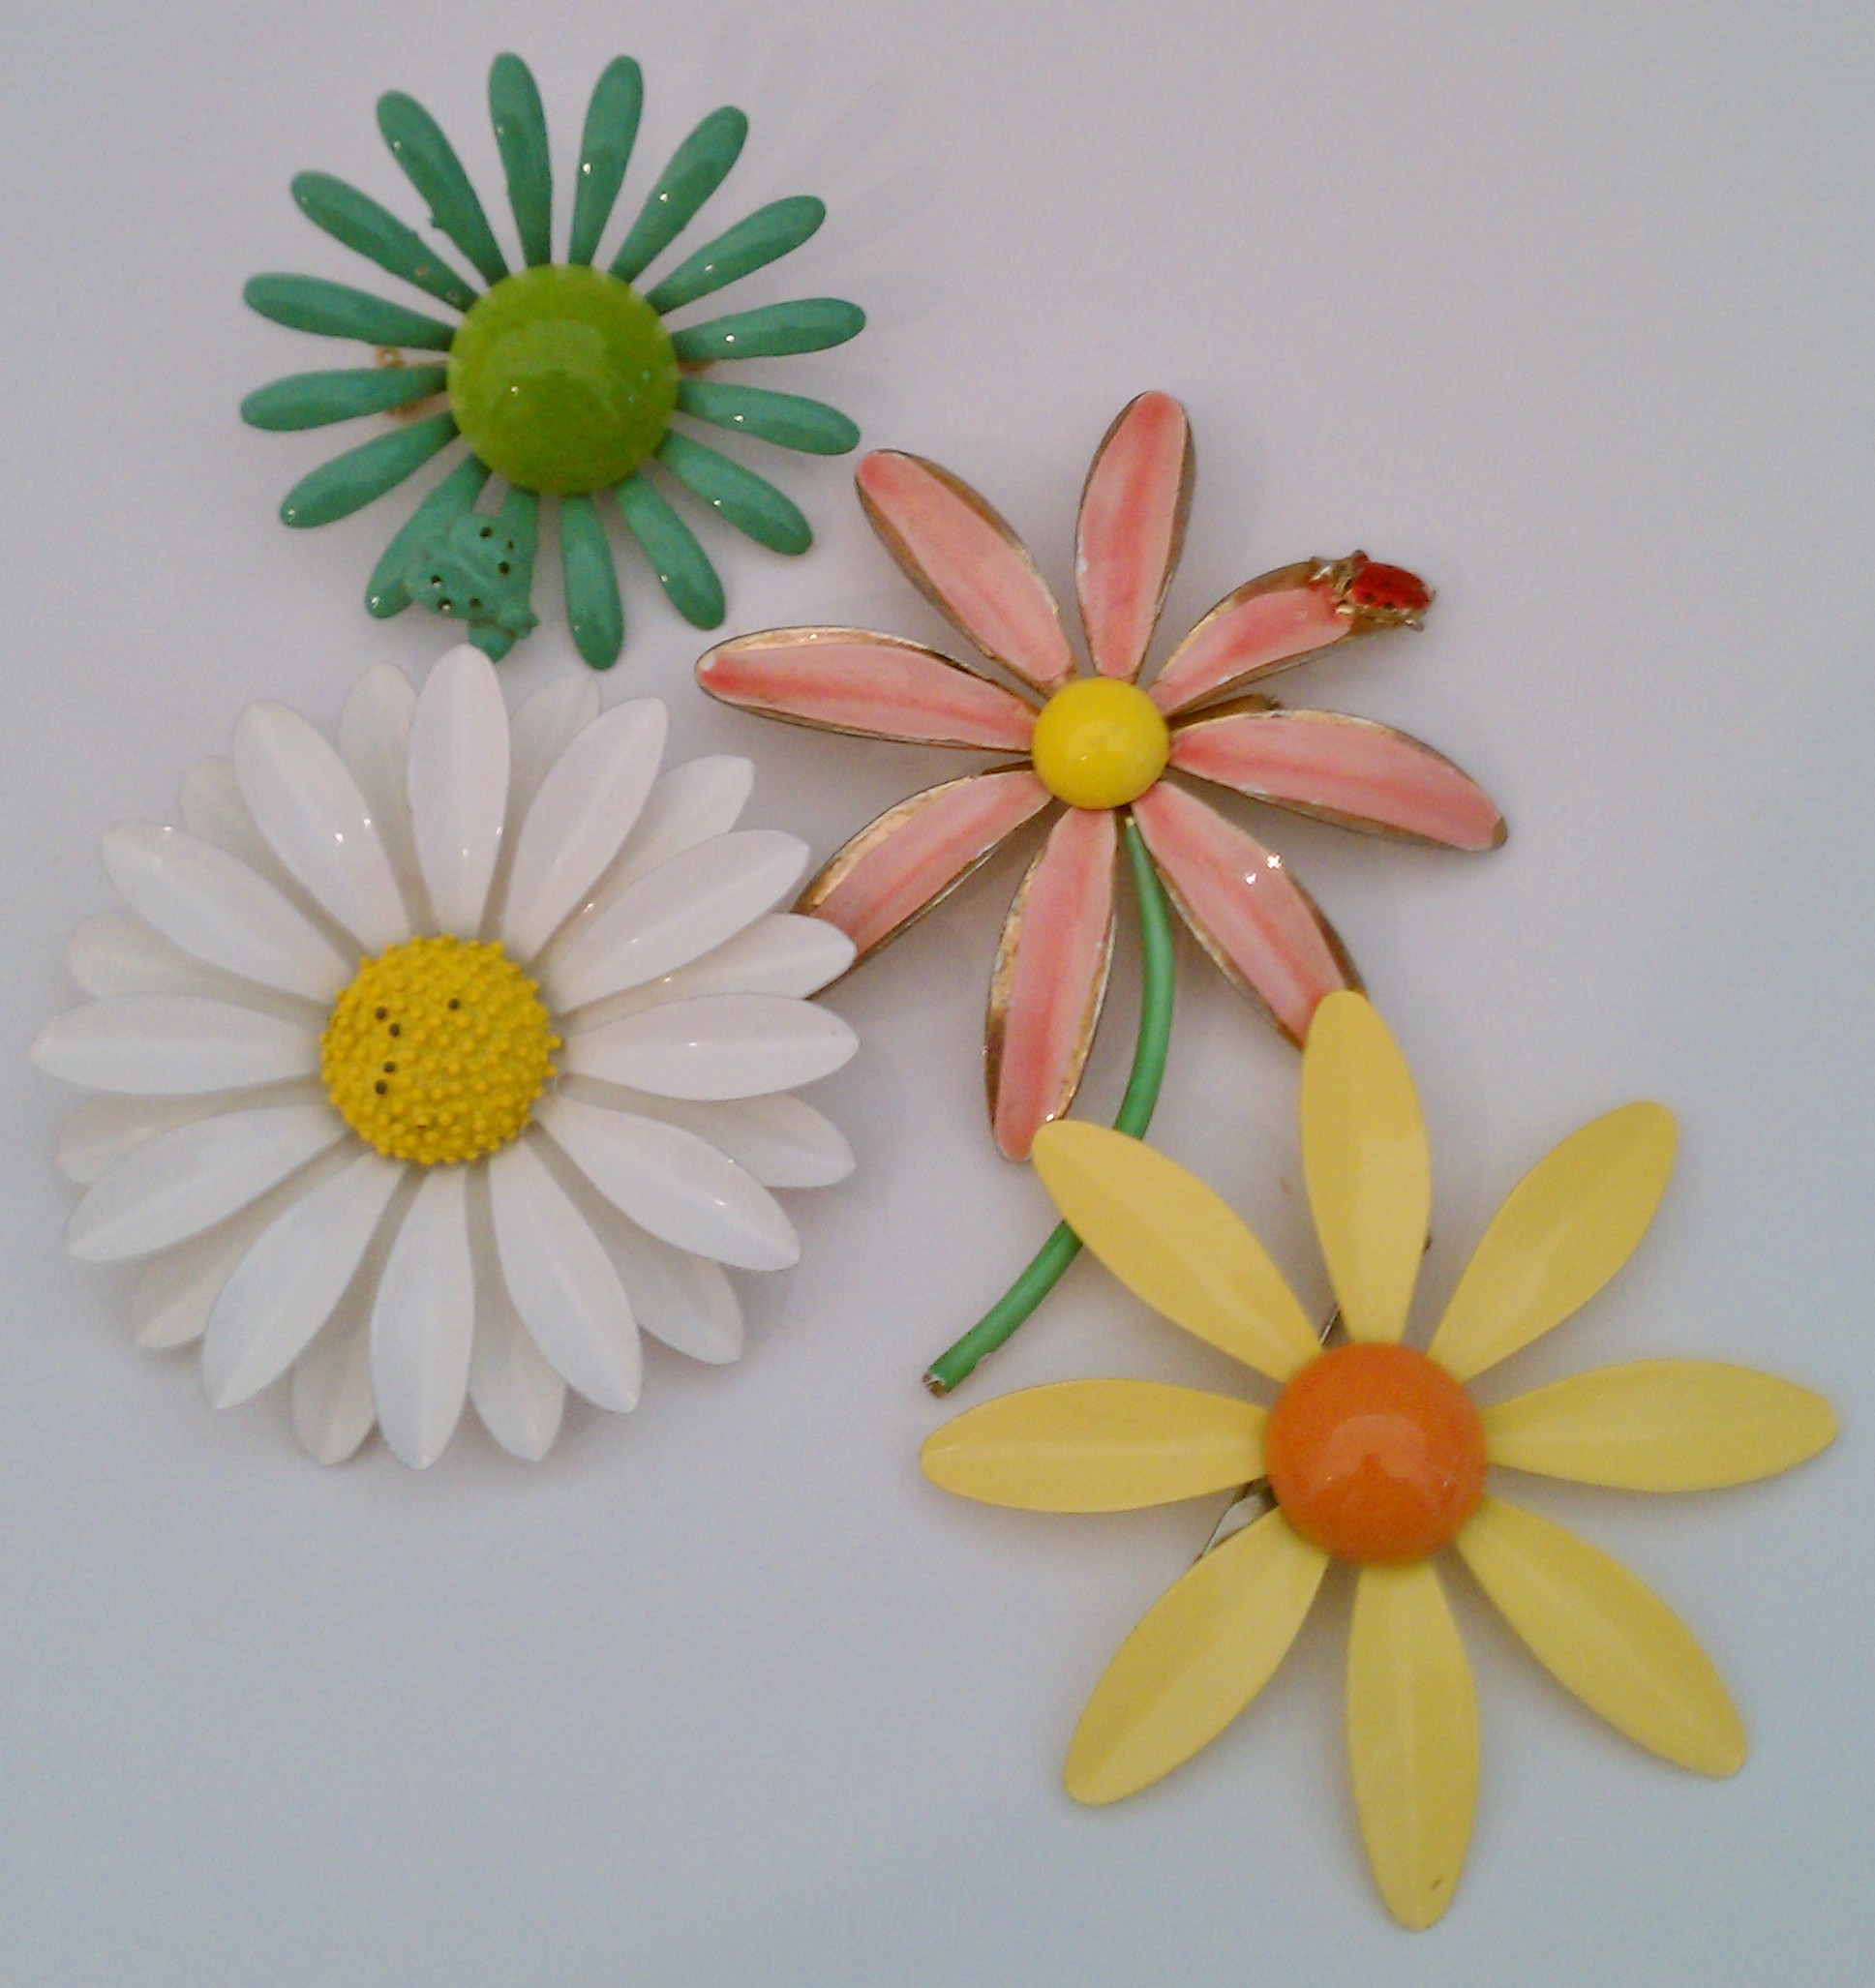 Enameled flower pins were very popular in the 1950s and I think they may be making a come back.  The yellow and aqua daisies belonged to my mother and the pink and white pins were mine.